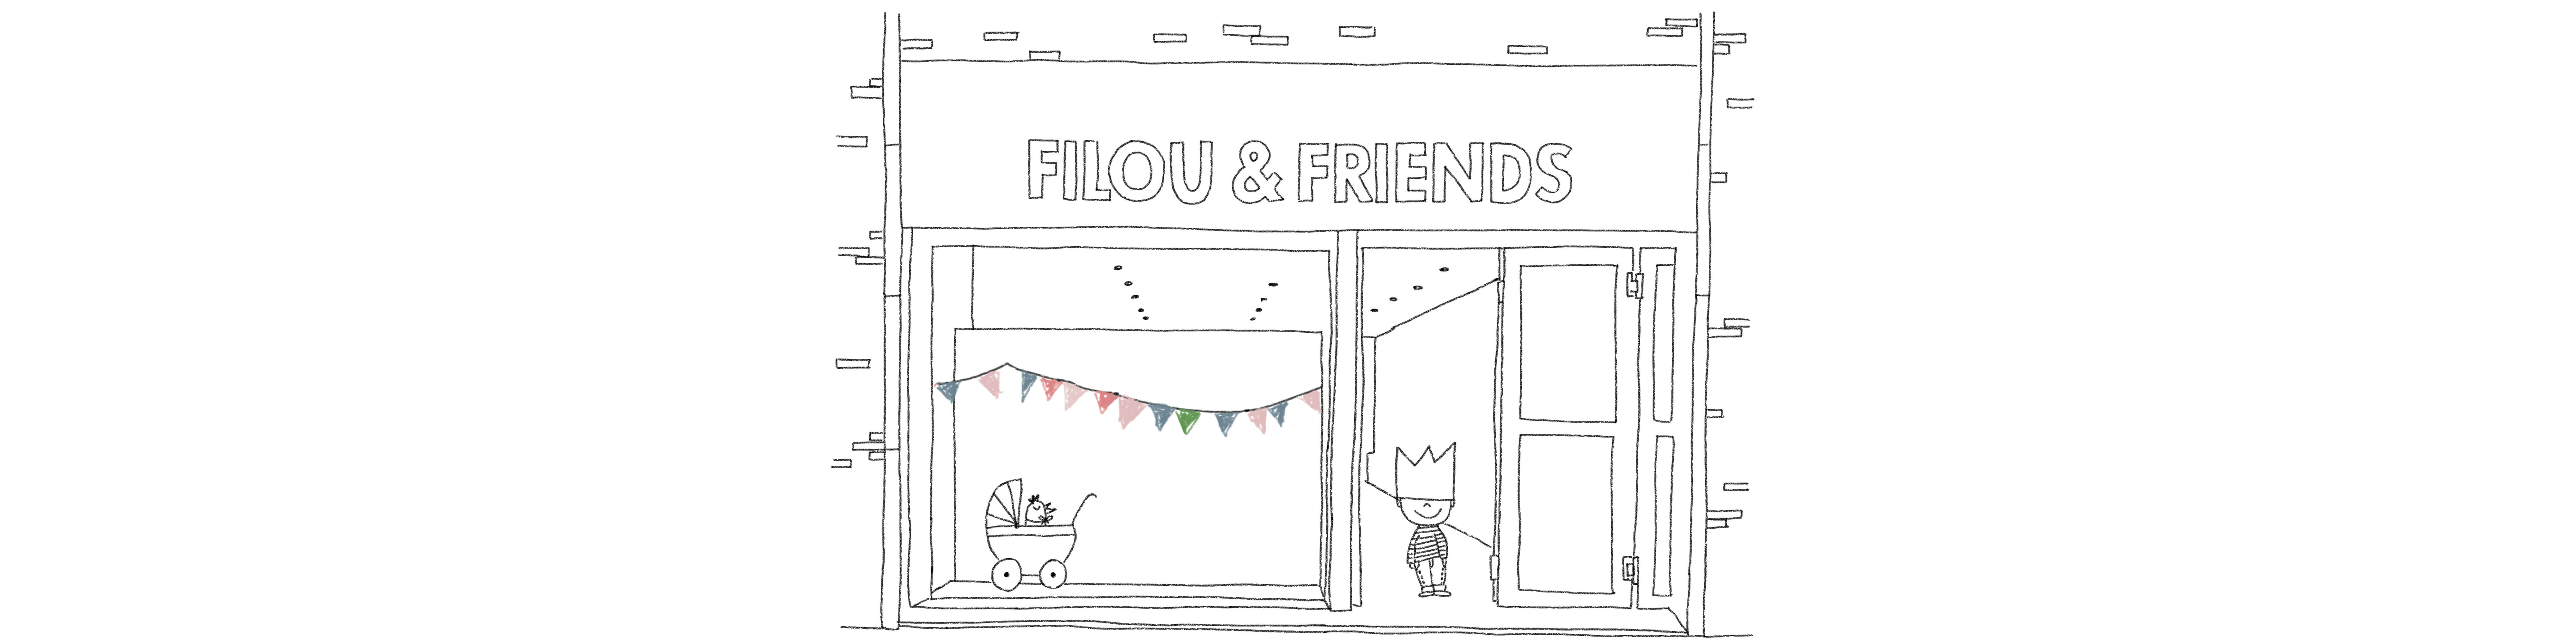 FILOU & FRIENDS AALST